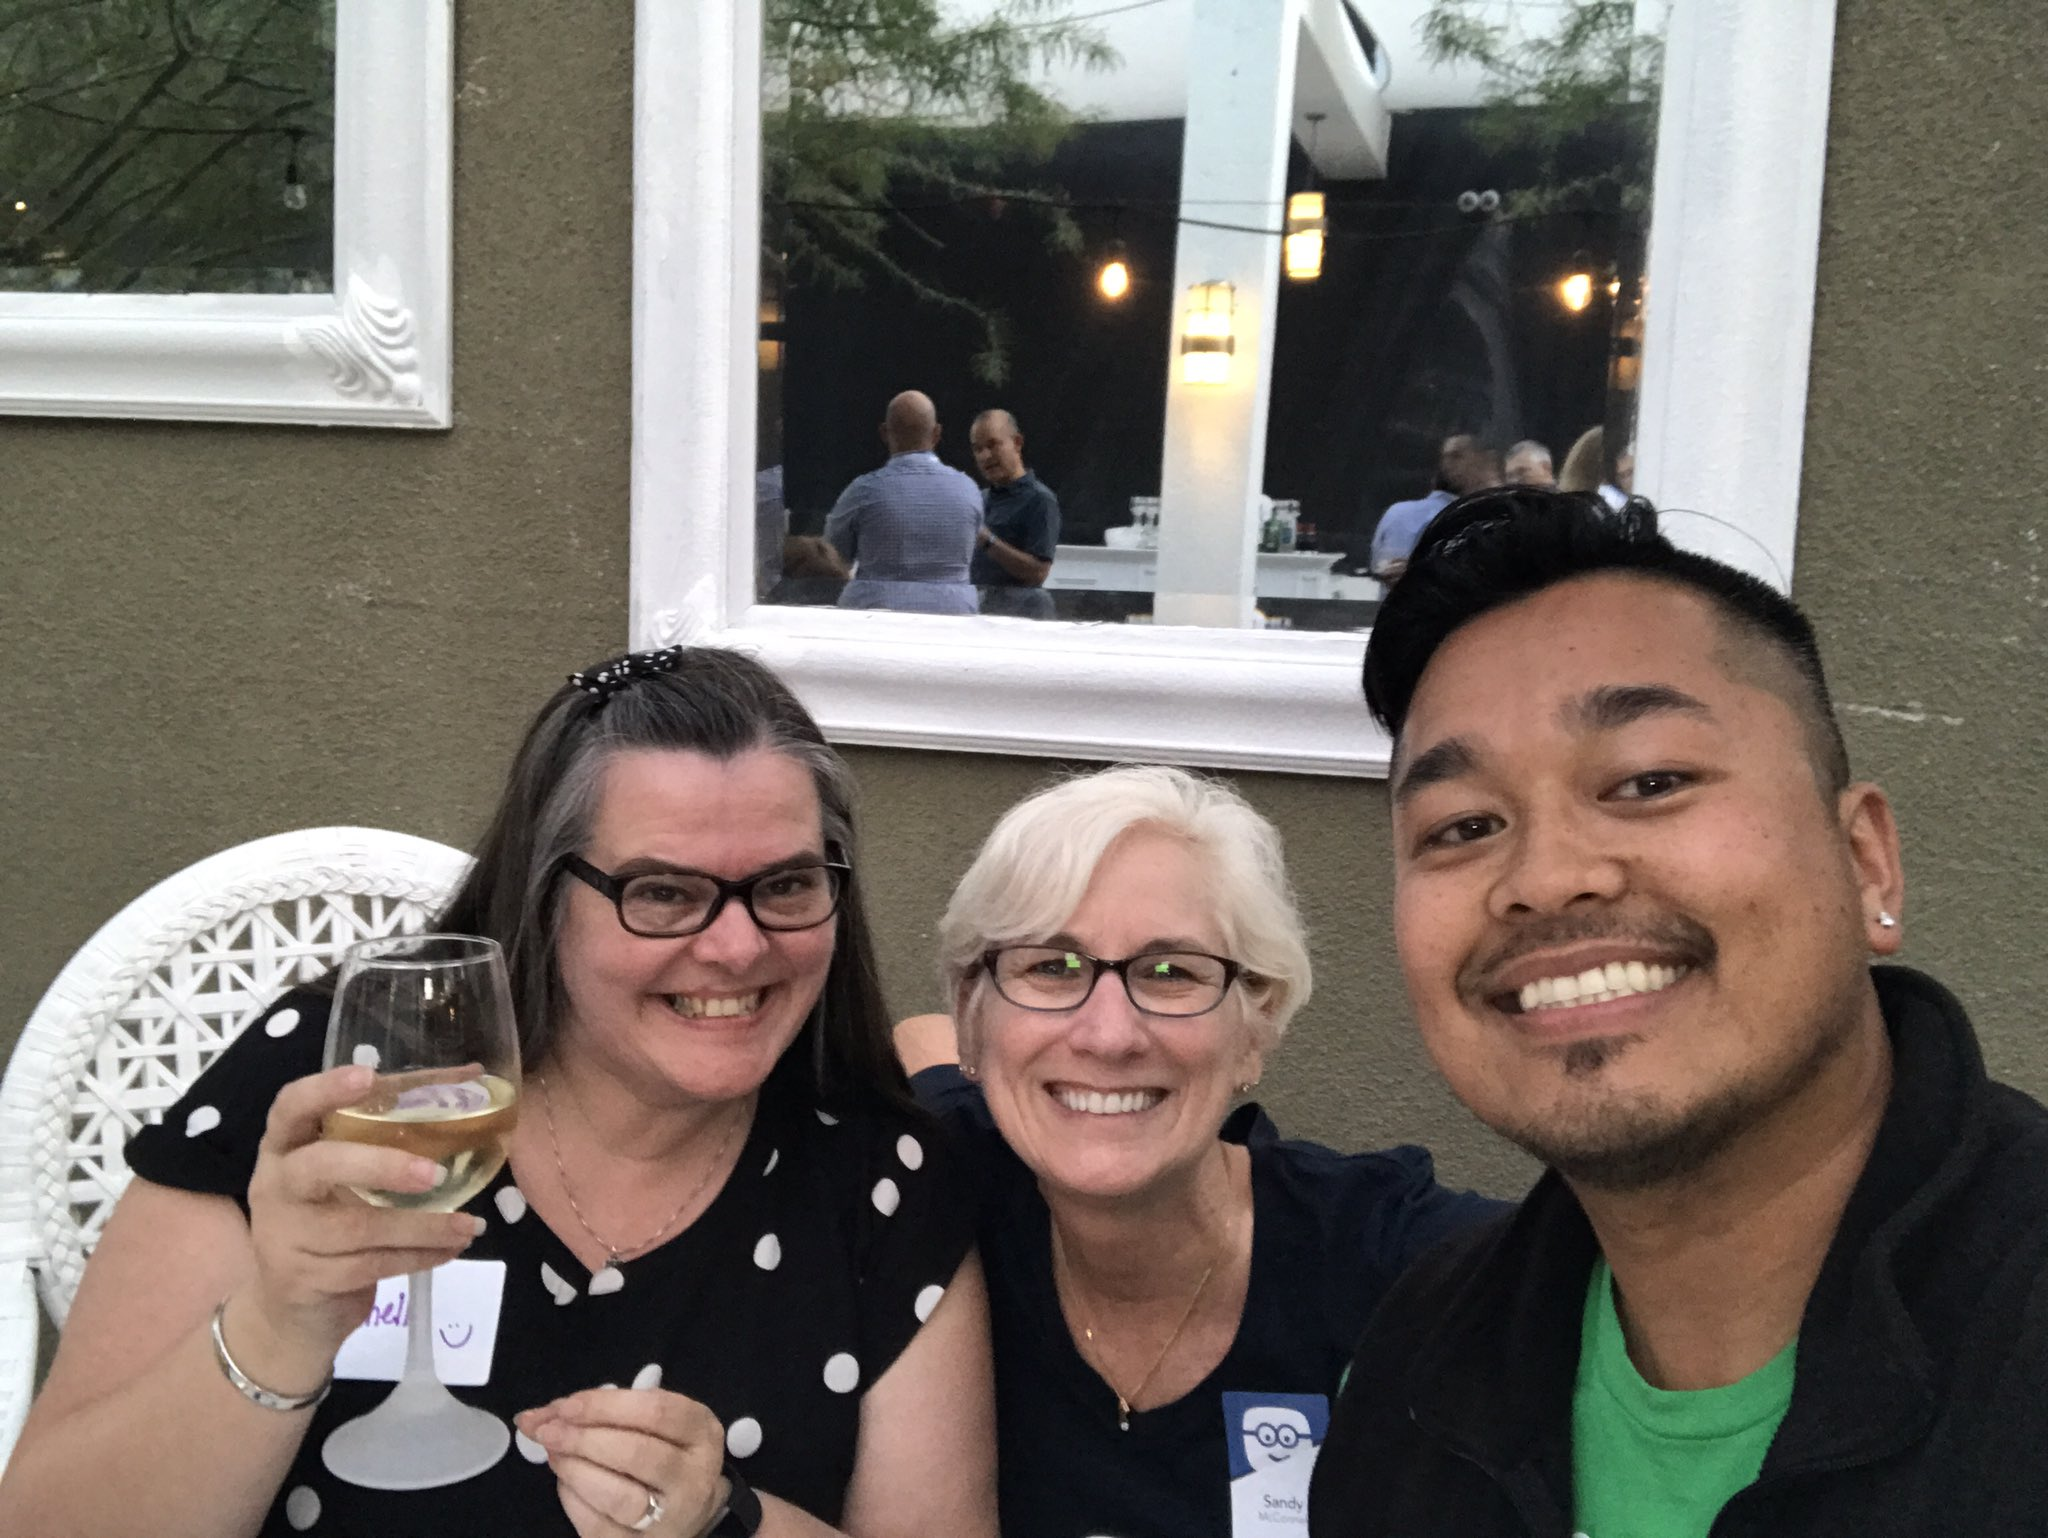 Great time with @Edmodo @sandramc59 @mtouceda cheers to new friends.  #FOMO https://t.co/5septqgKkE